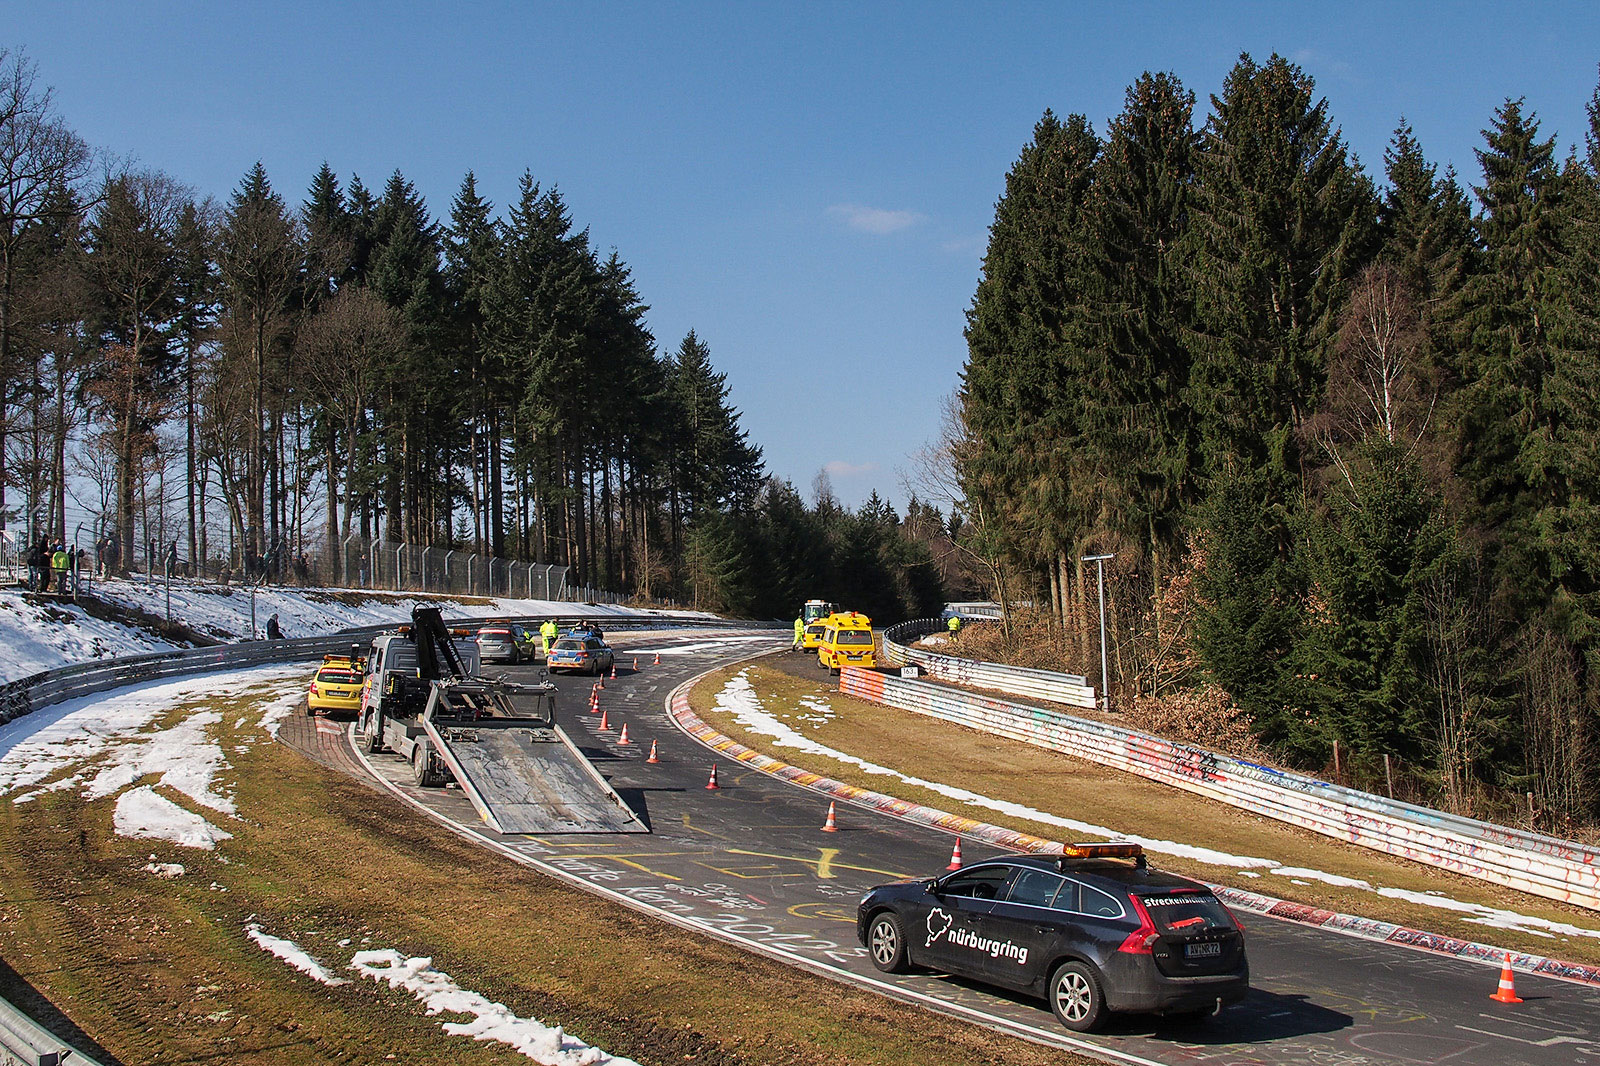 Nürburgring staff trying to work out what to do about a graffiti doodle. Also note the amount of snow still surrounding the track. Photo by Meaghan O'Brien.